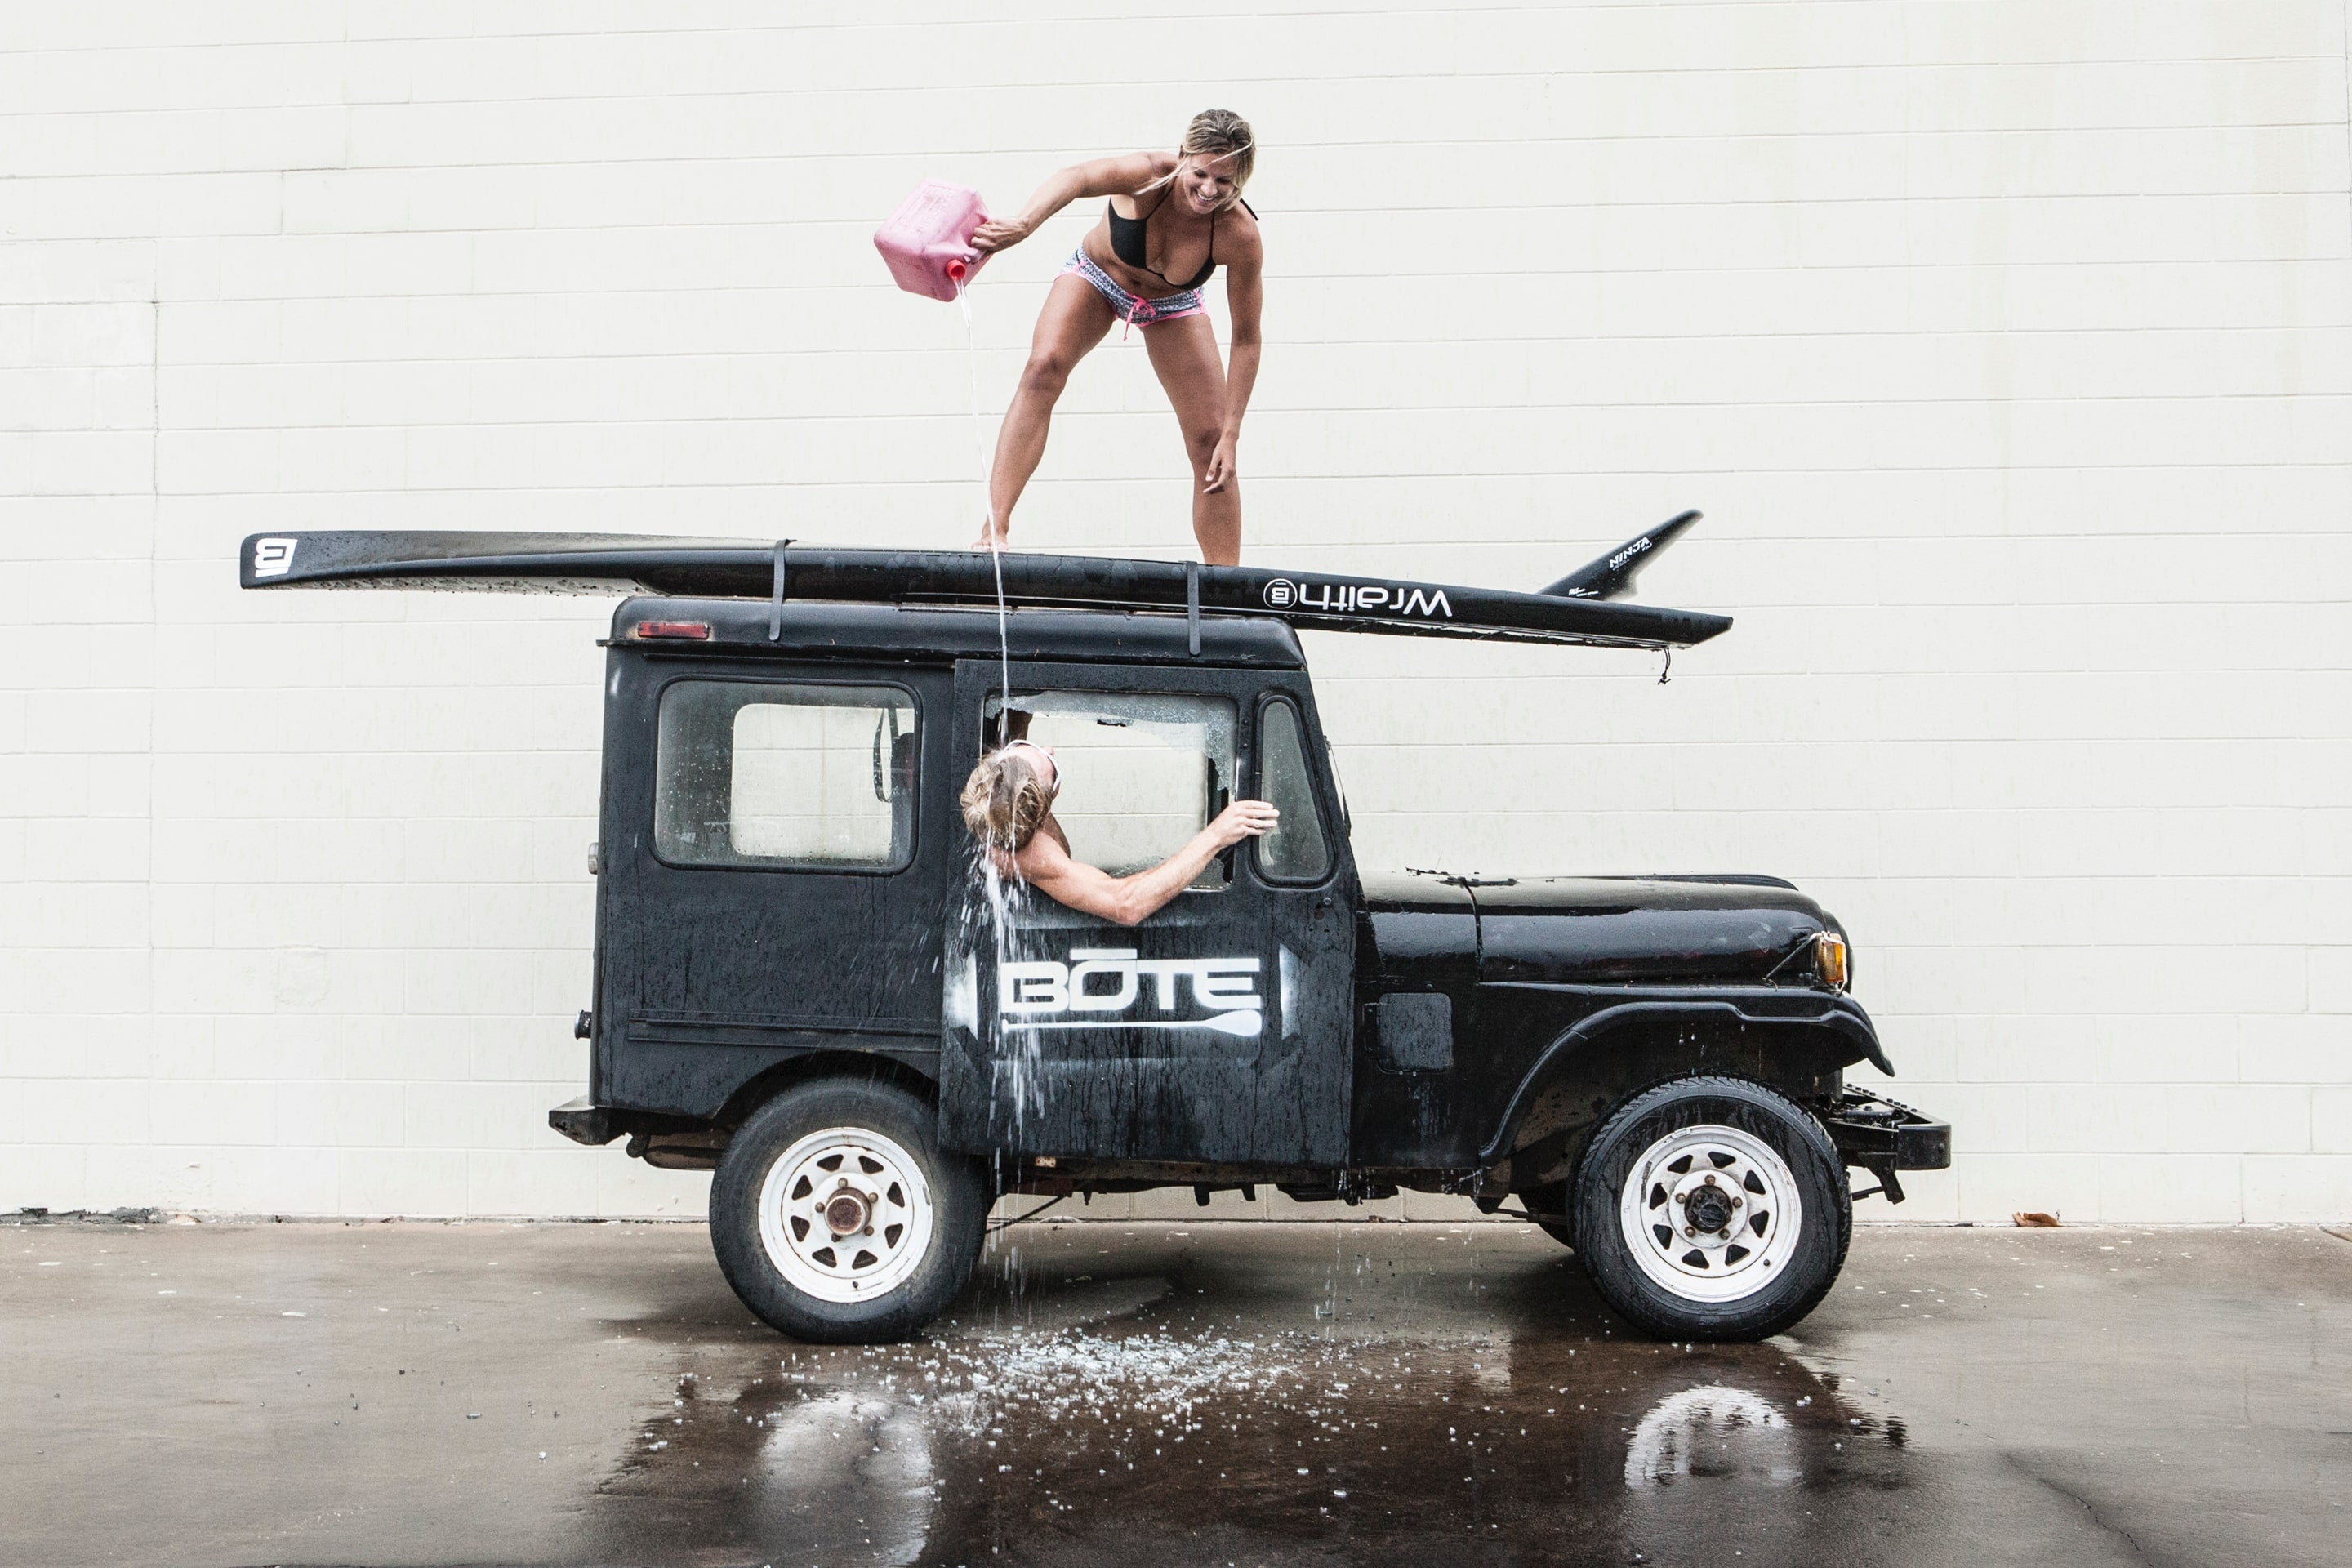 BOTE Boards, Magda atop jeep